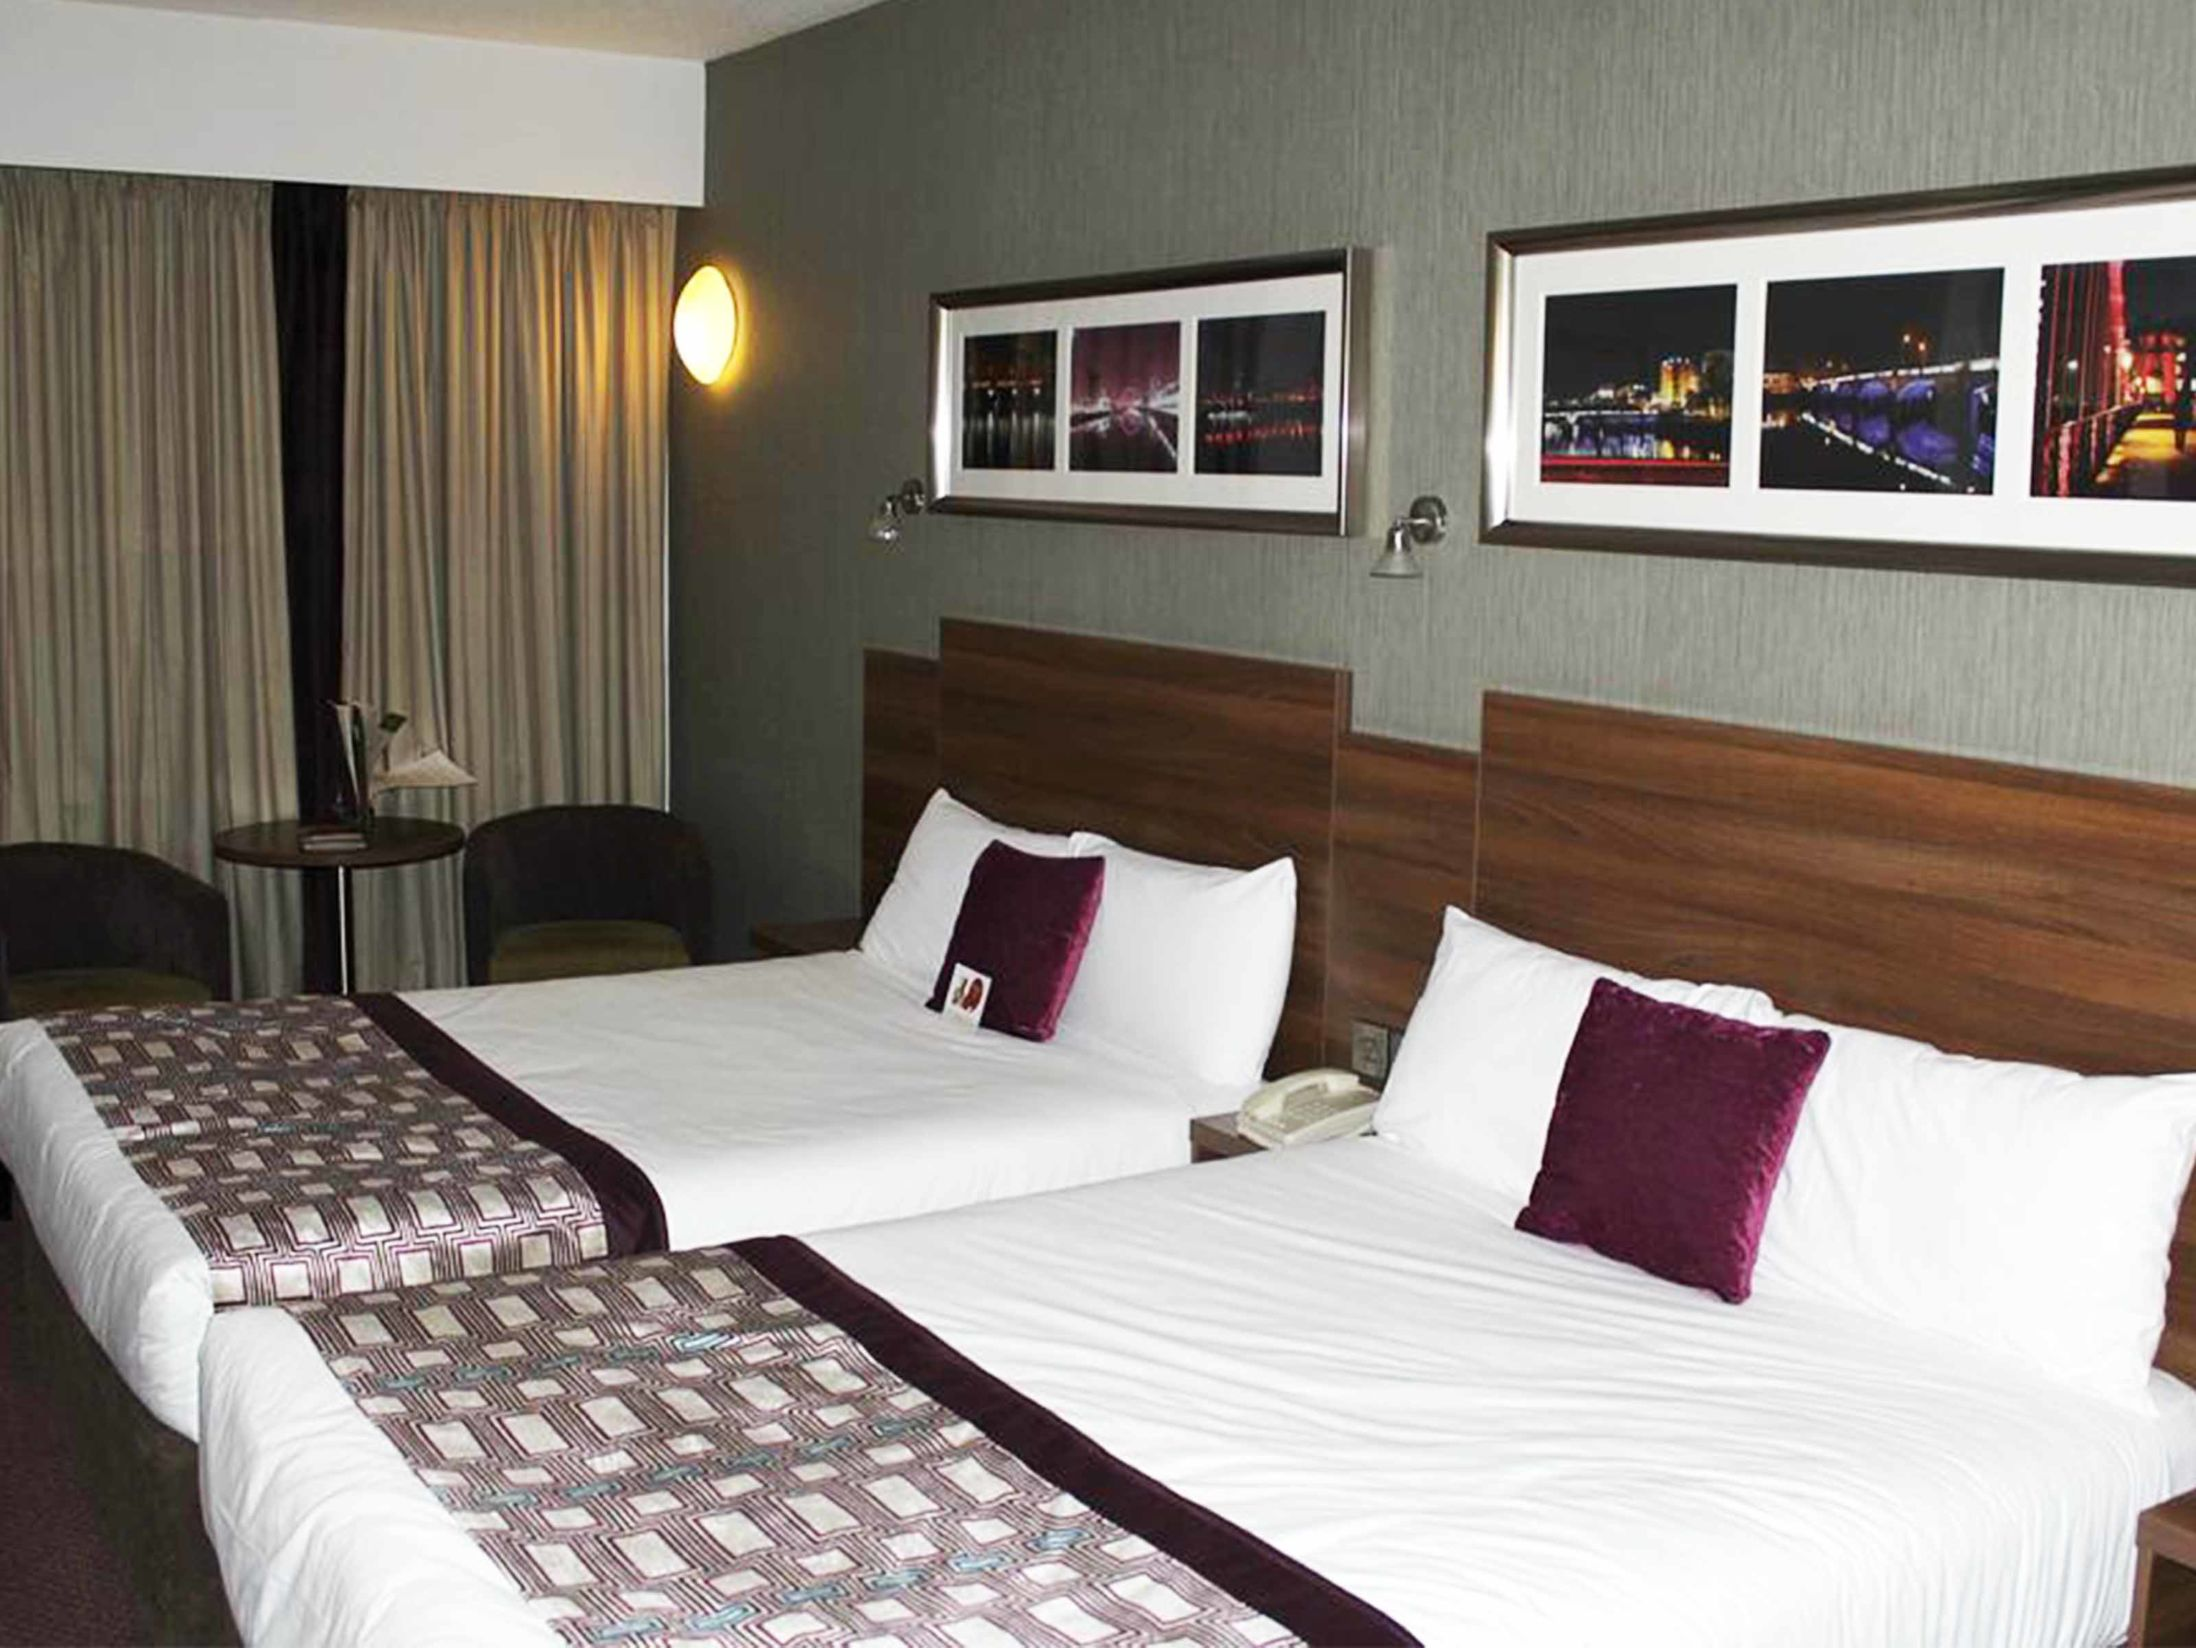 Best Hotels in Glasgow -Jurys Inn